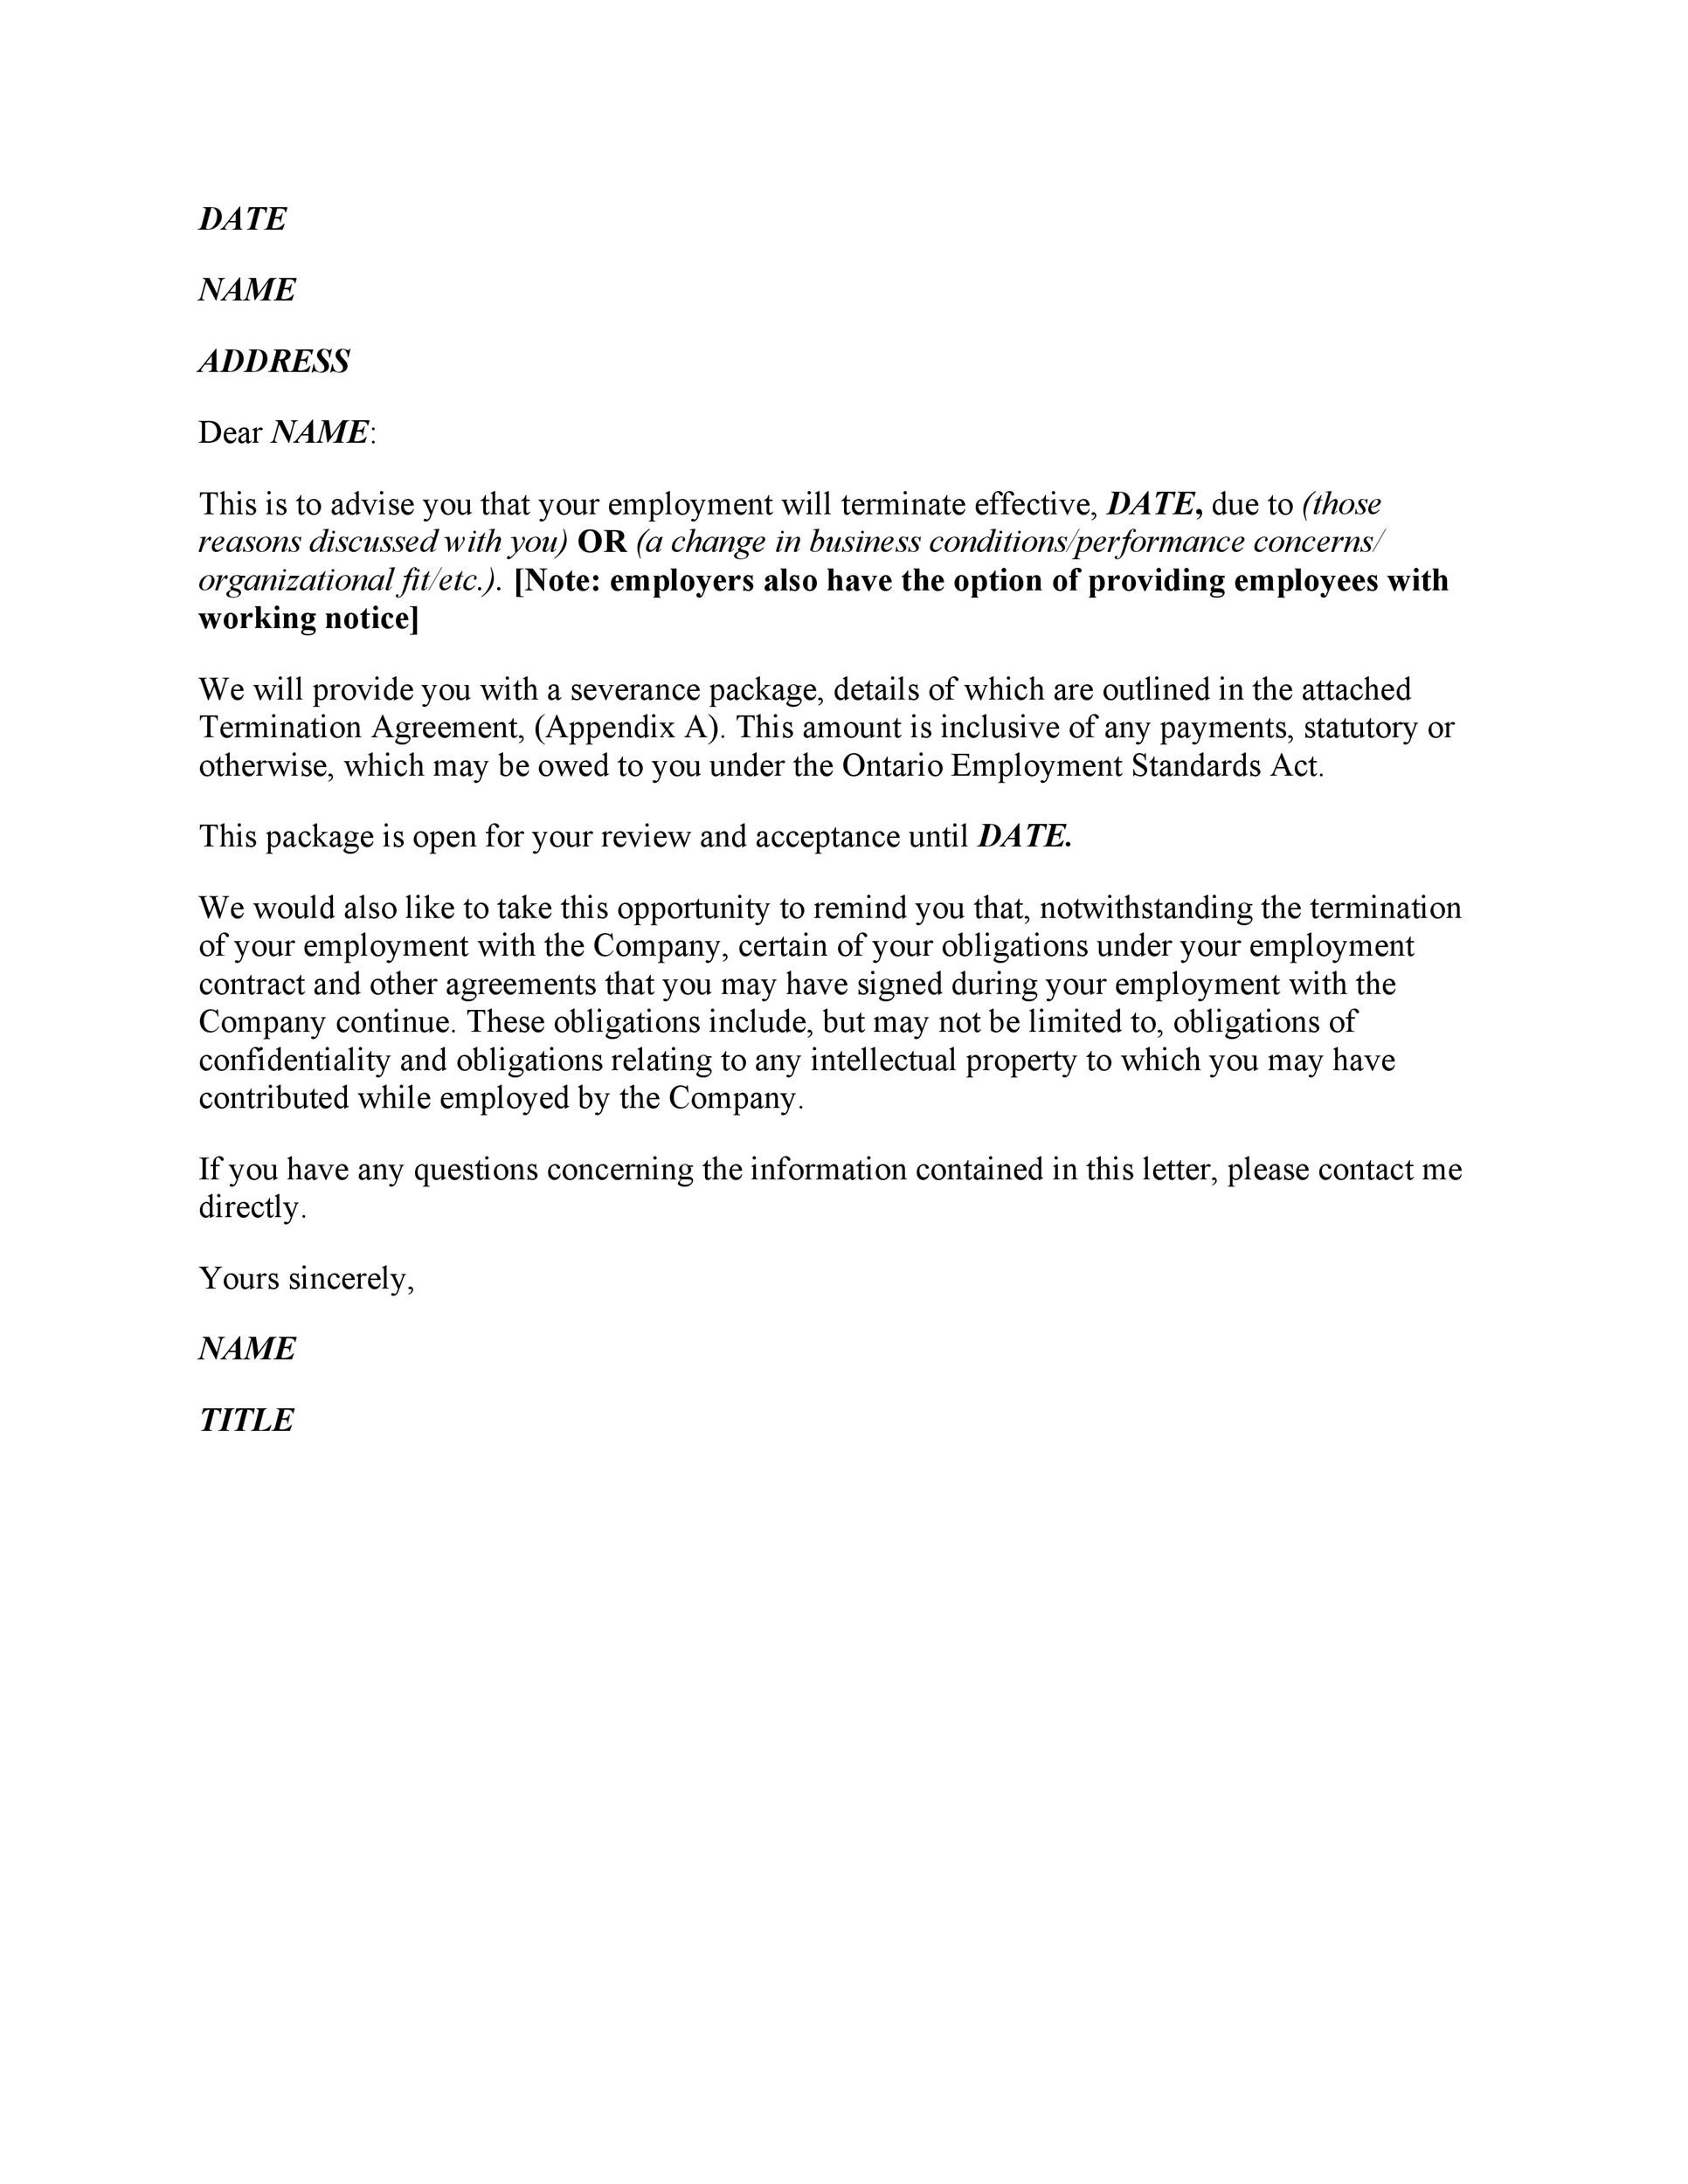 Contract Termination Letter Contract Termination Letter Word Format